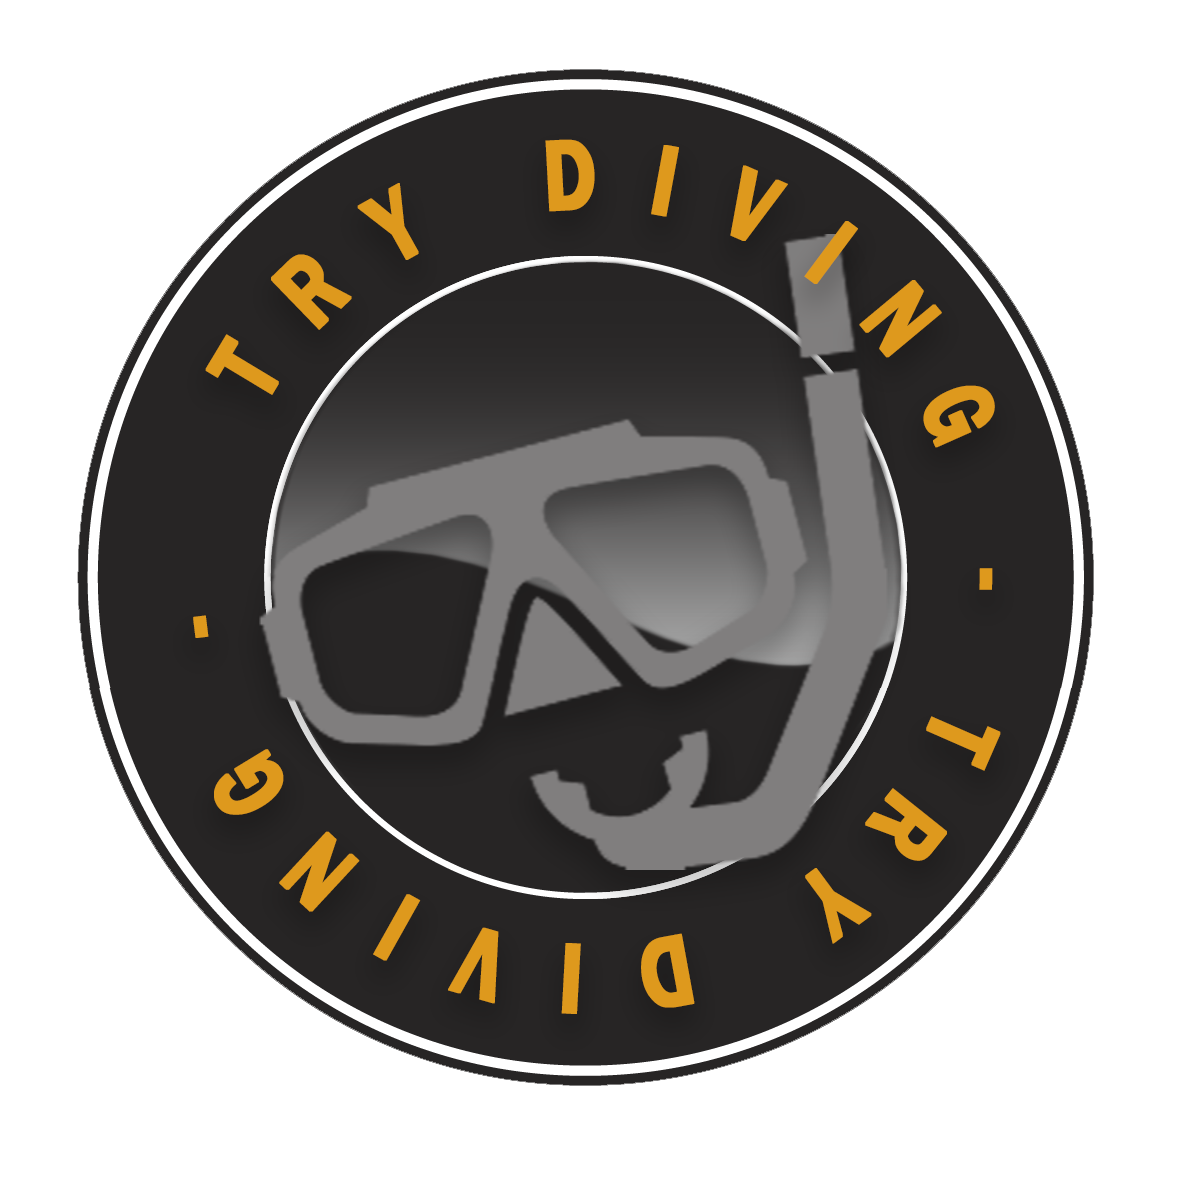 try-diving-logo.png